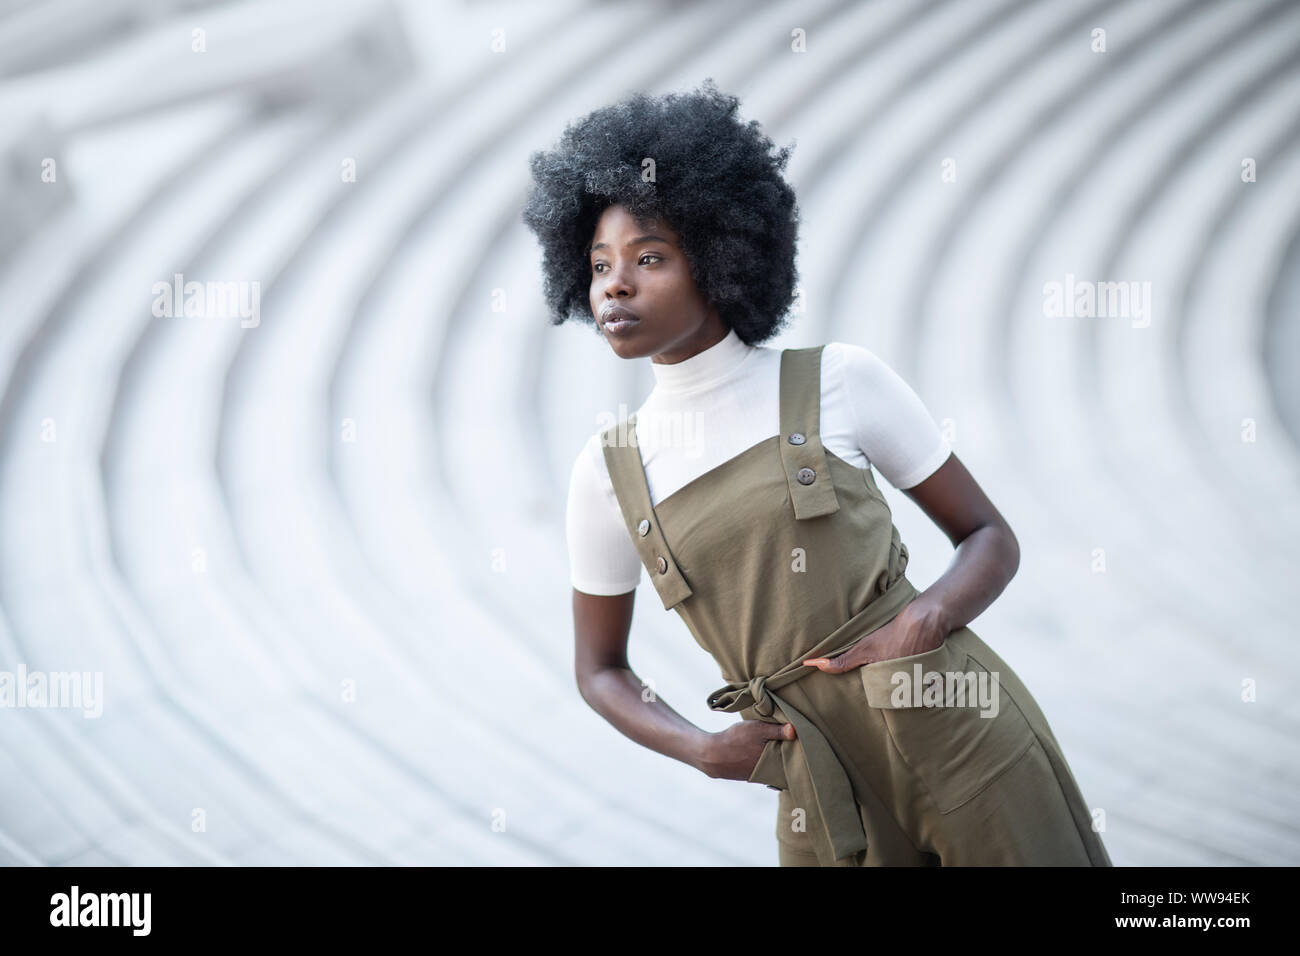 Young and beautiful black girl on an urban landscape, creative fashion shot, stairs. Stock Photo